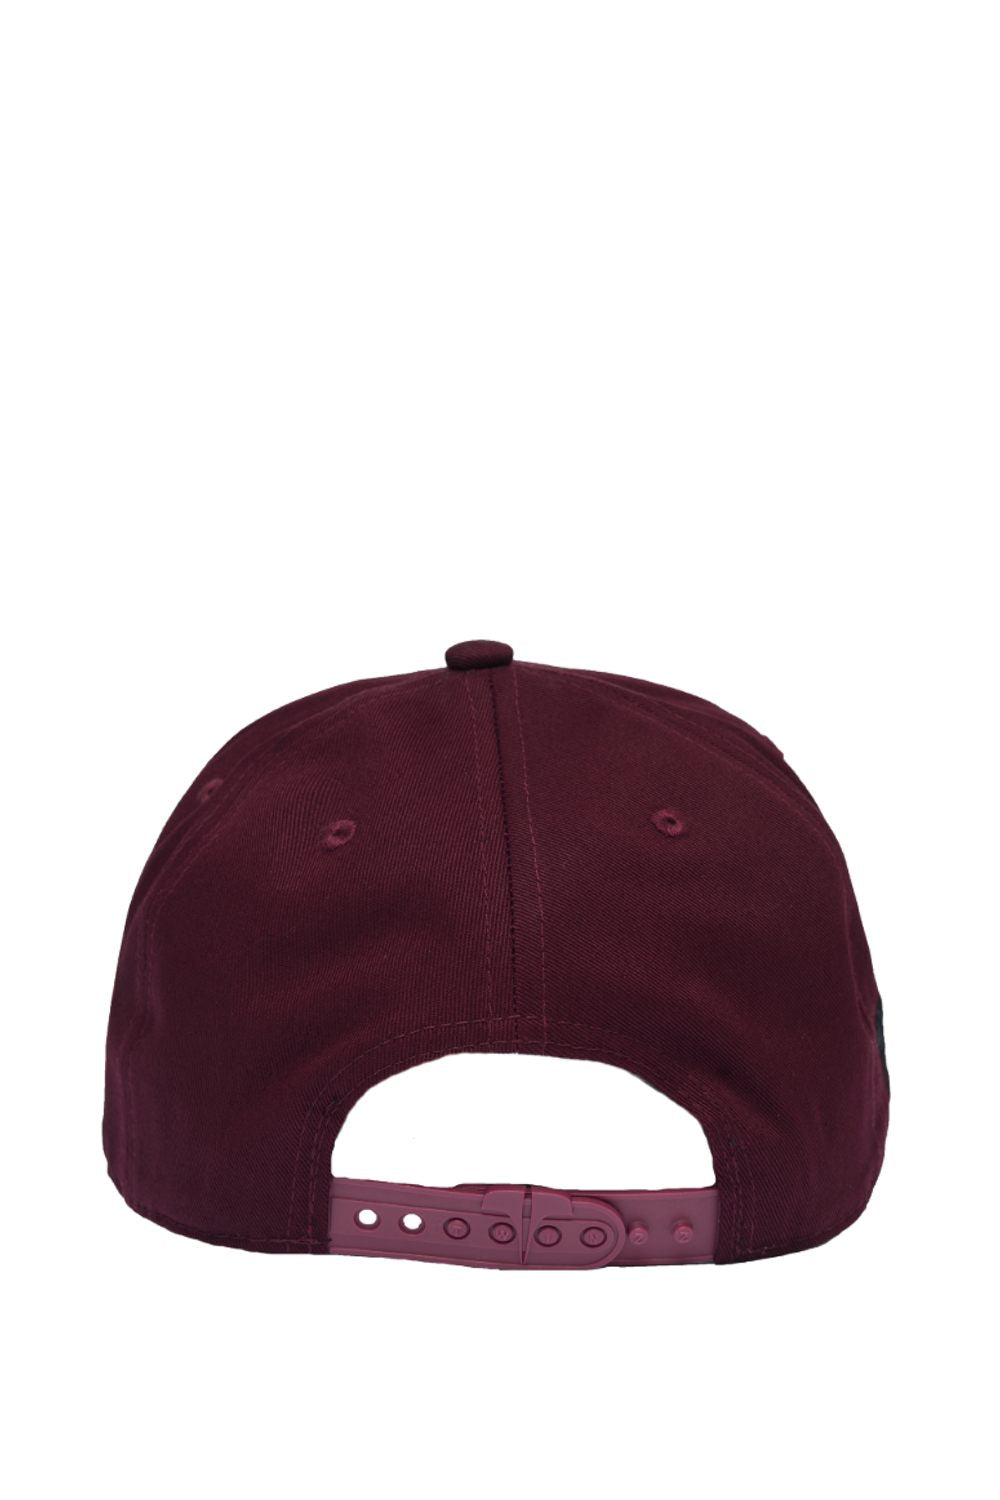 Twinzz 3D Full Trucker Cap - Burgundy/Black - 2